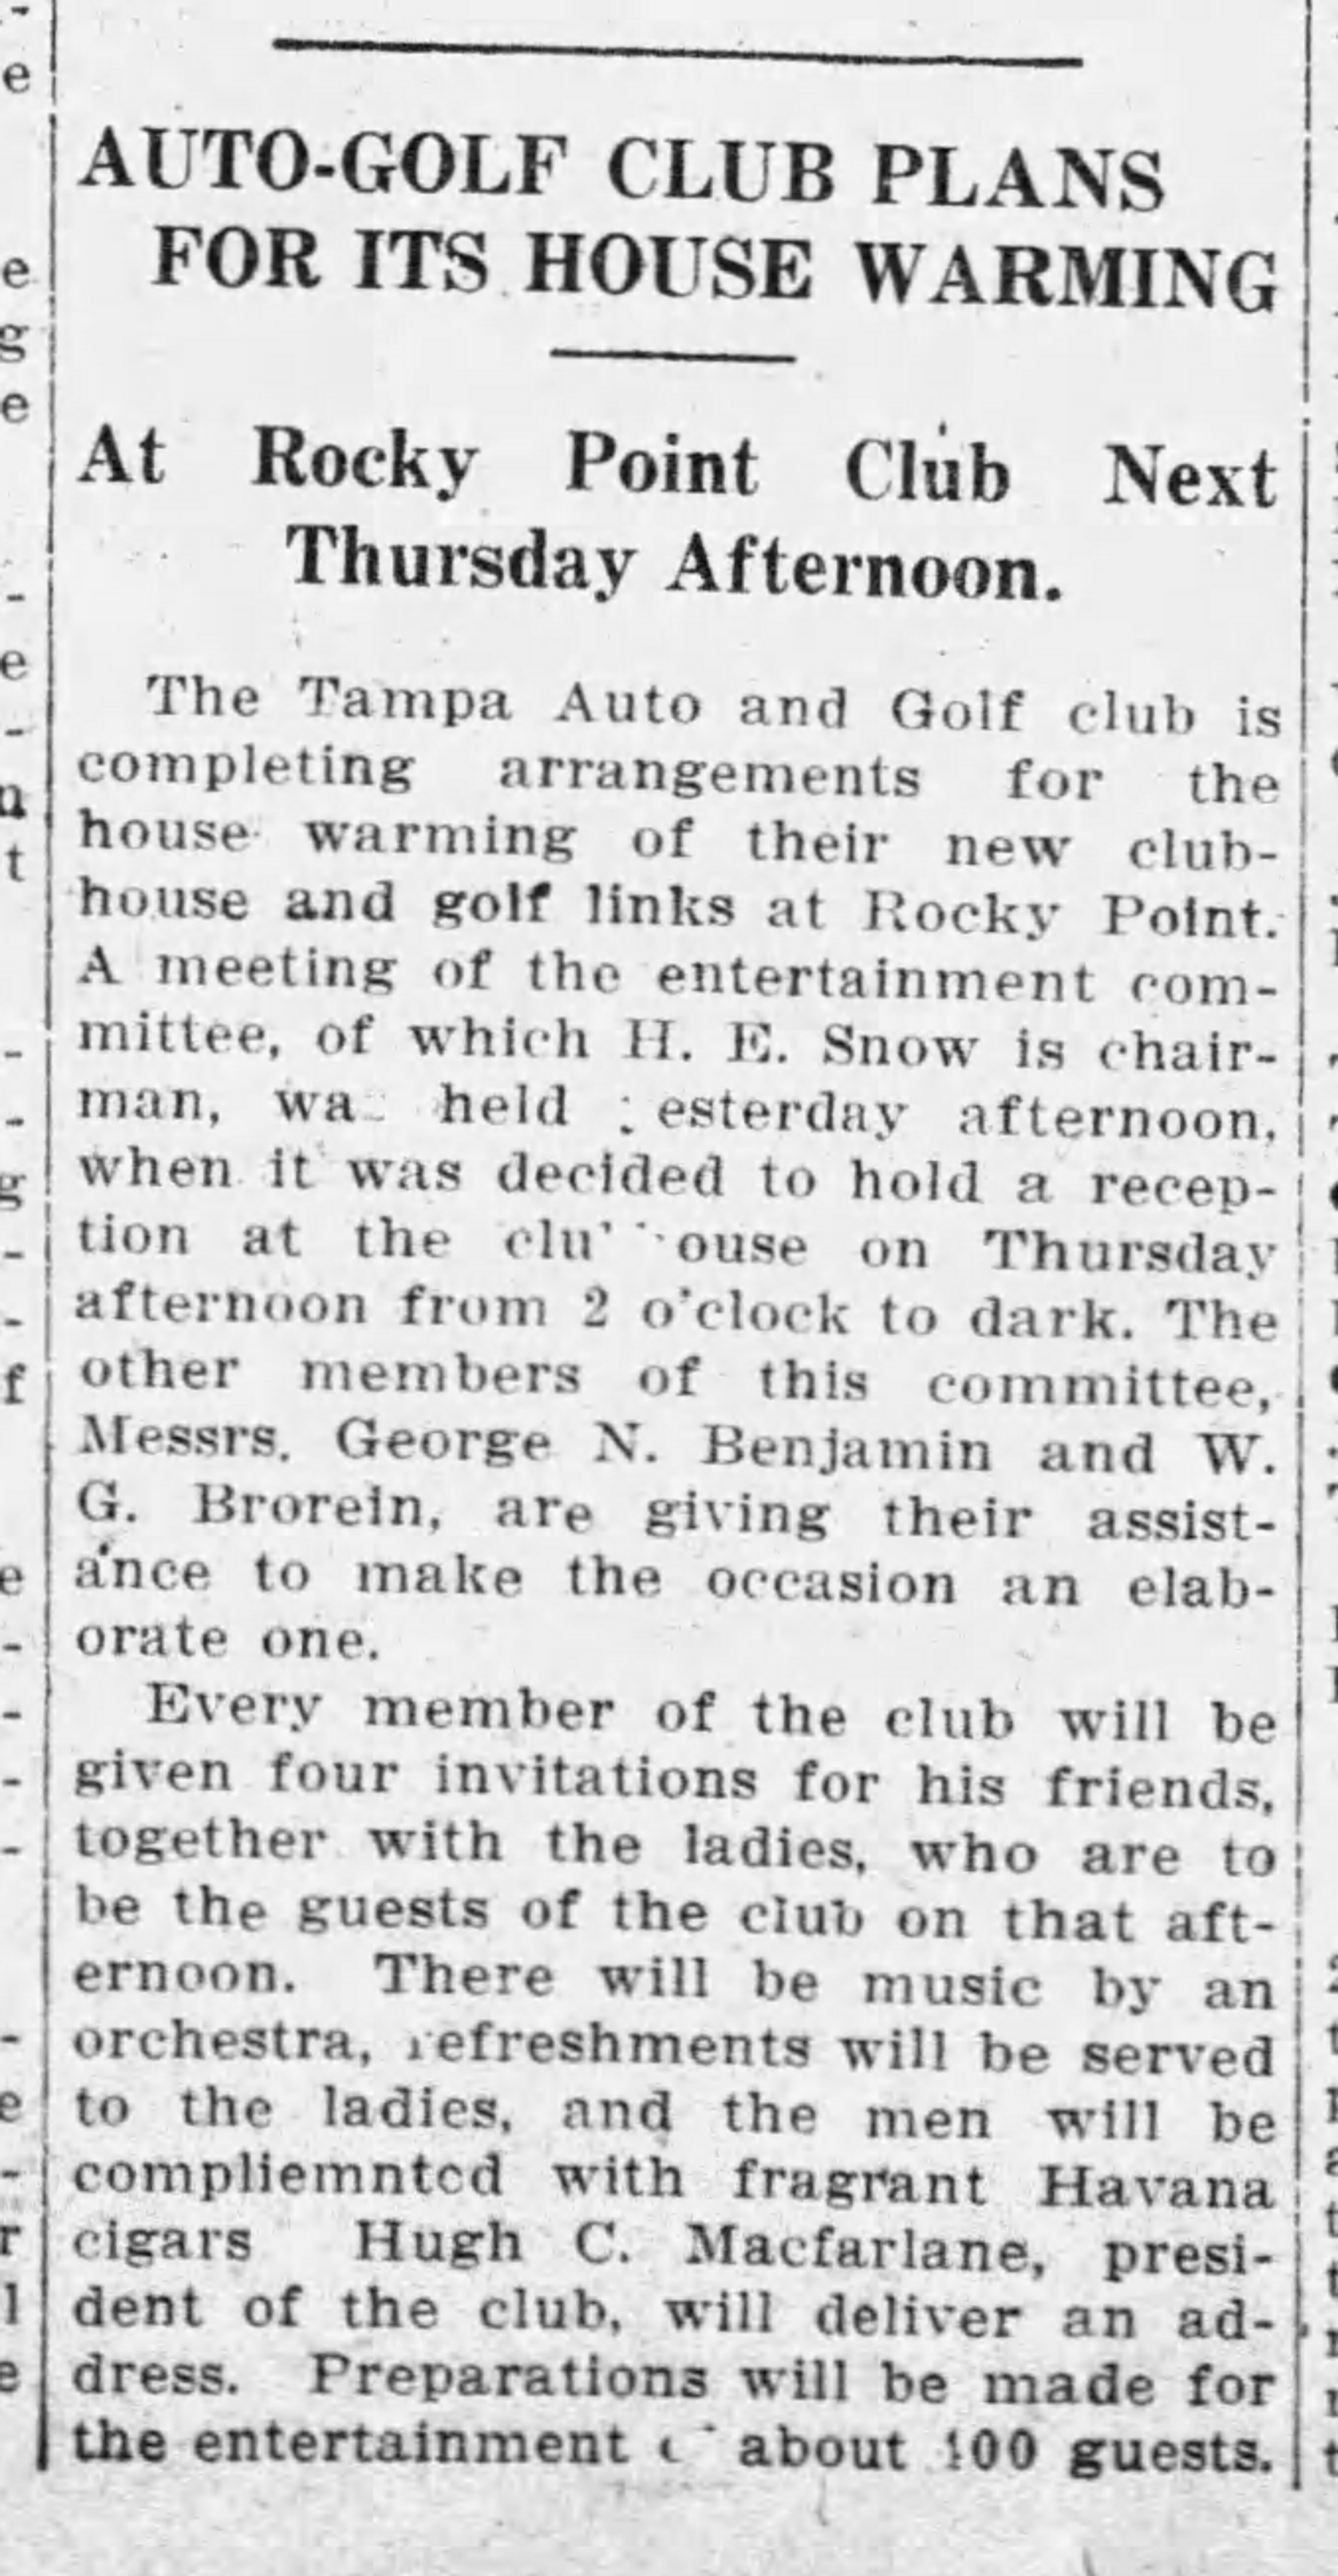 Auto-Golf Club Plans for its House Warming - May 4, 1912 Tampa Times